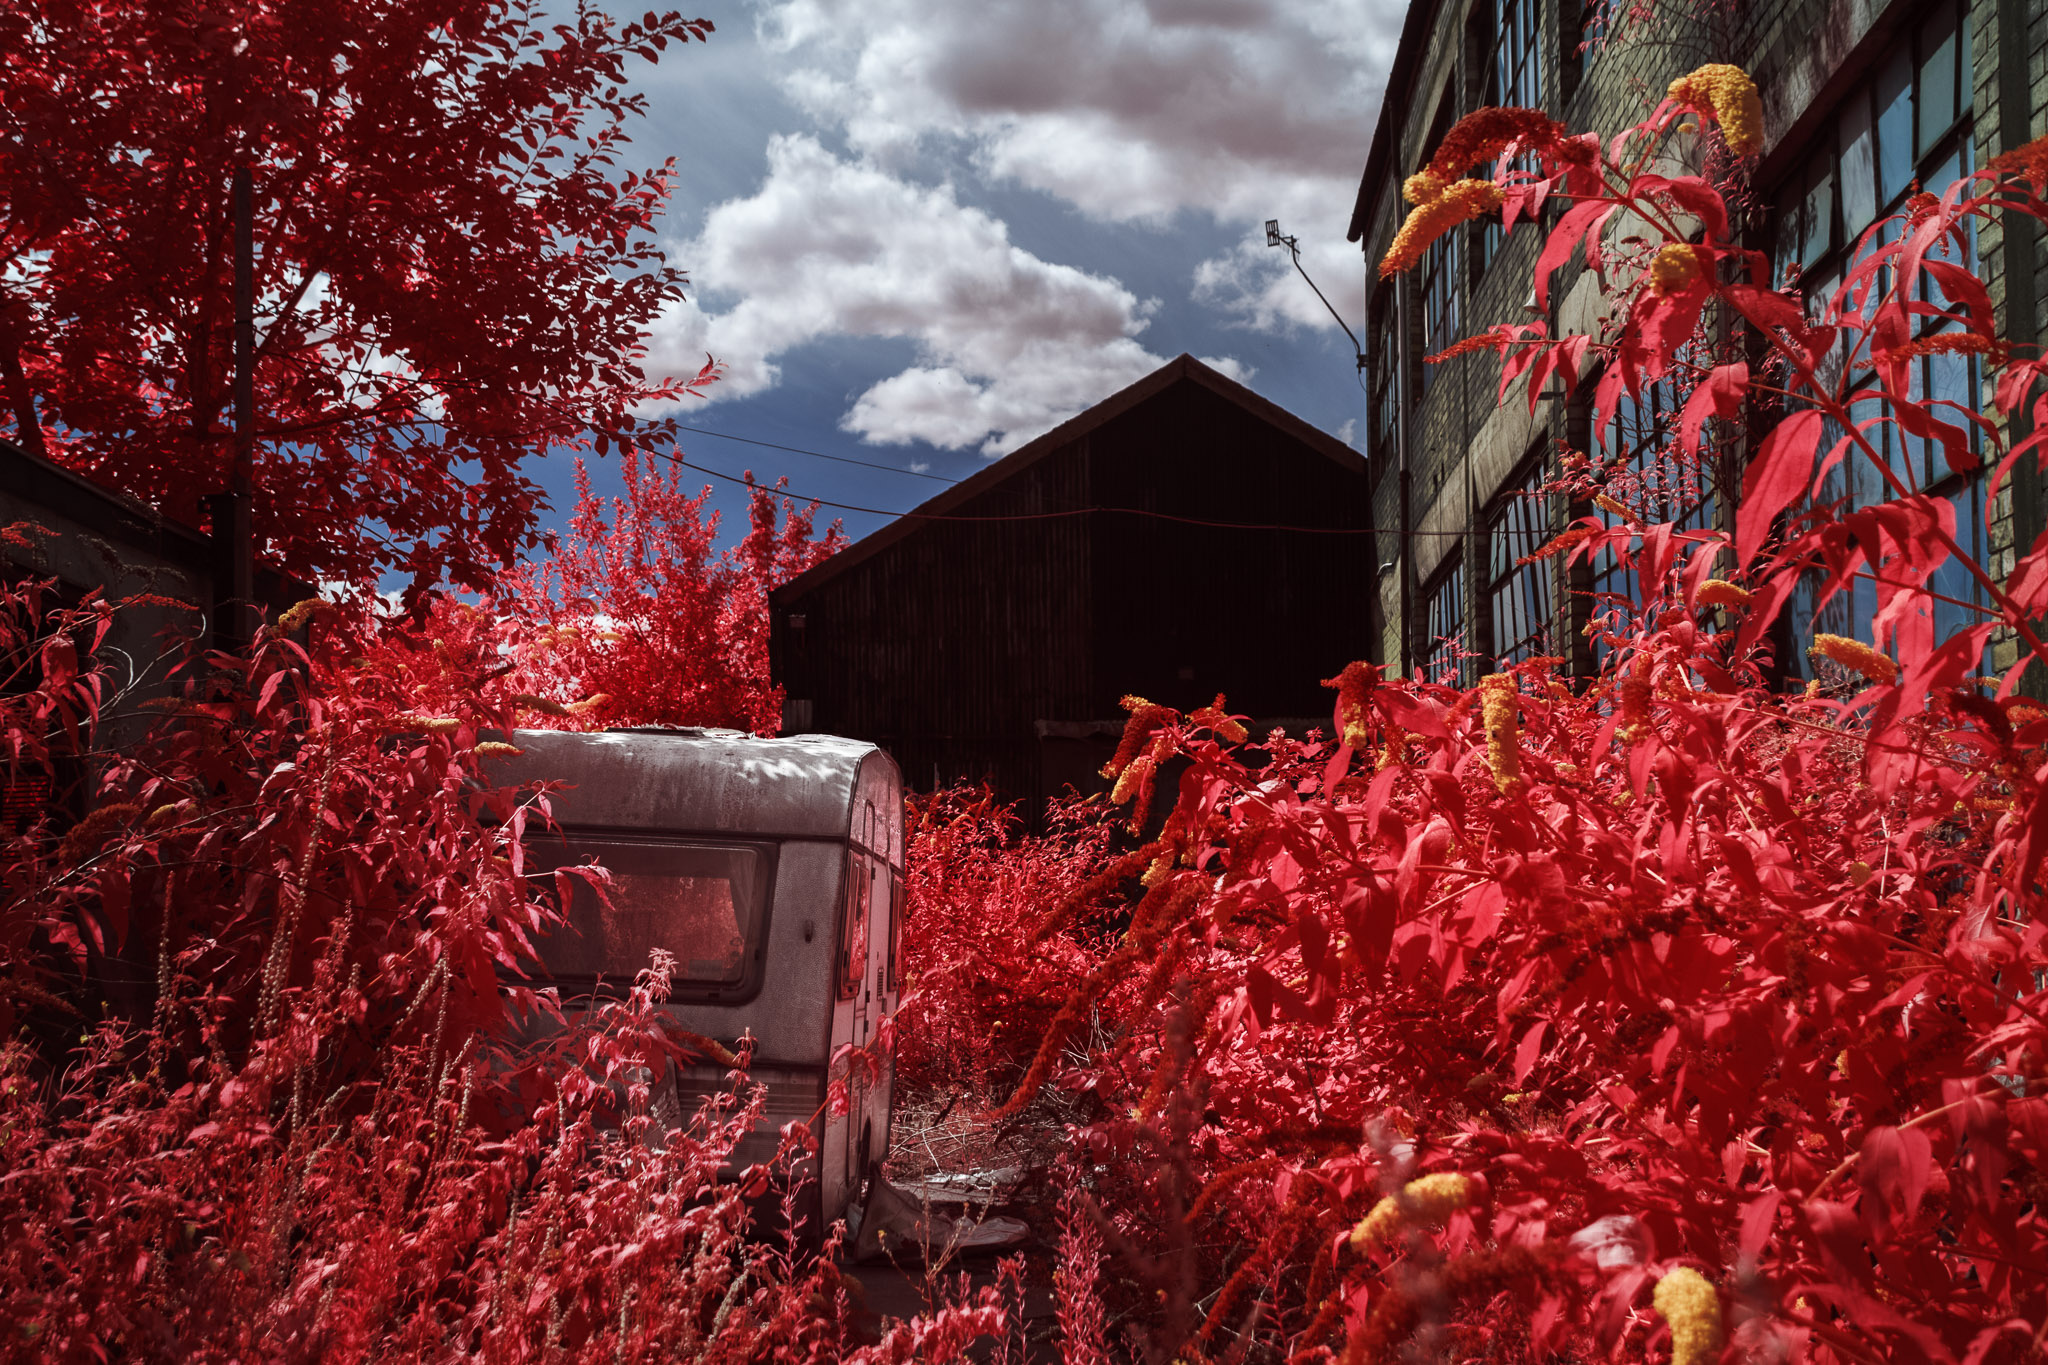 Kodak EIR Colour Infrared, Edgelands, Wasteland, Out of sight, Caravan ©Jonny Sutton